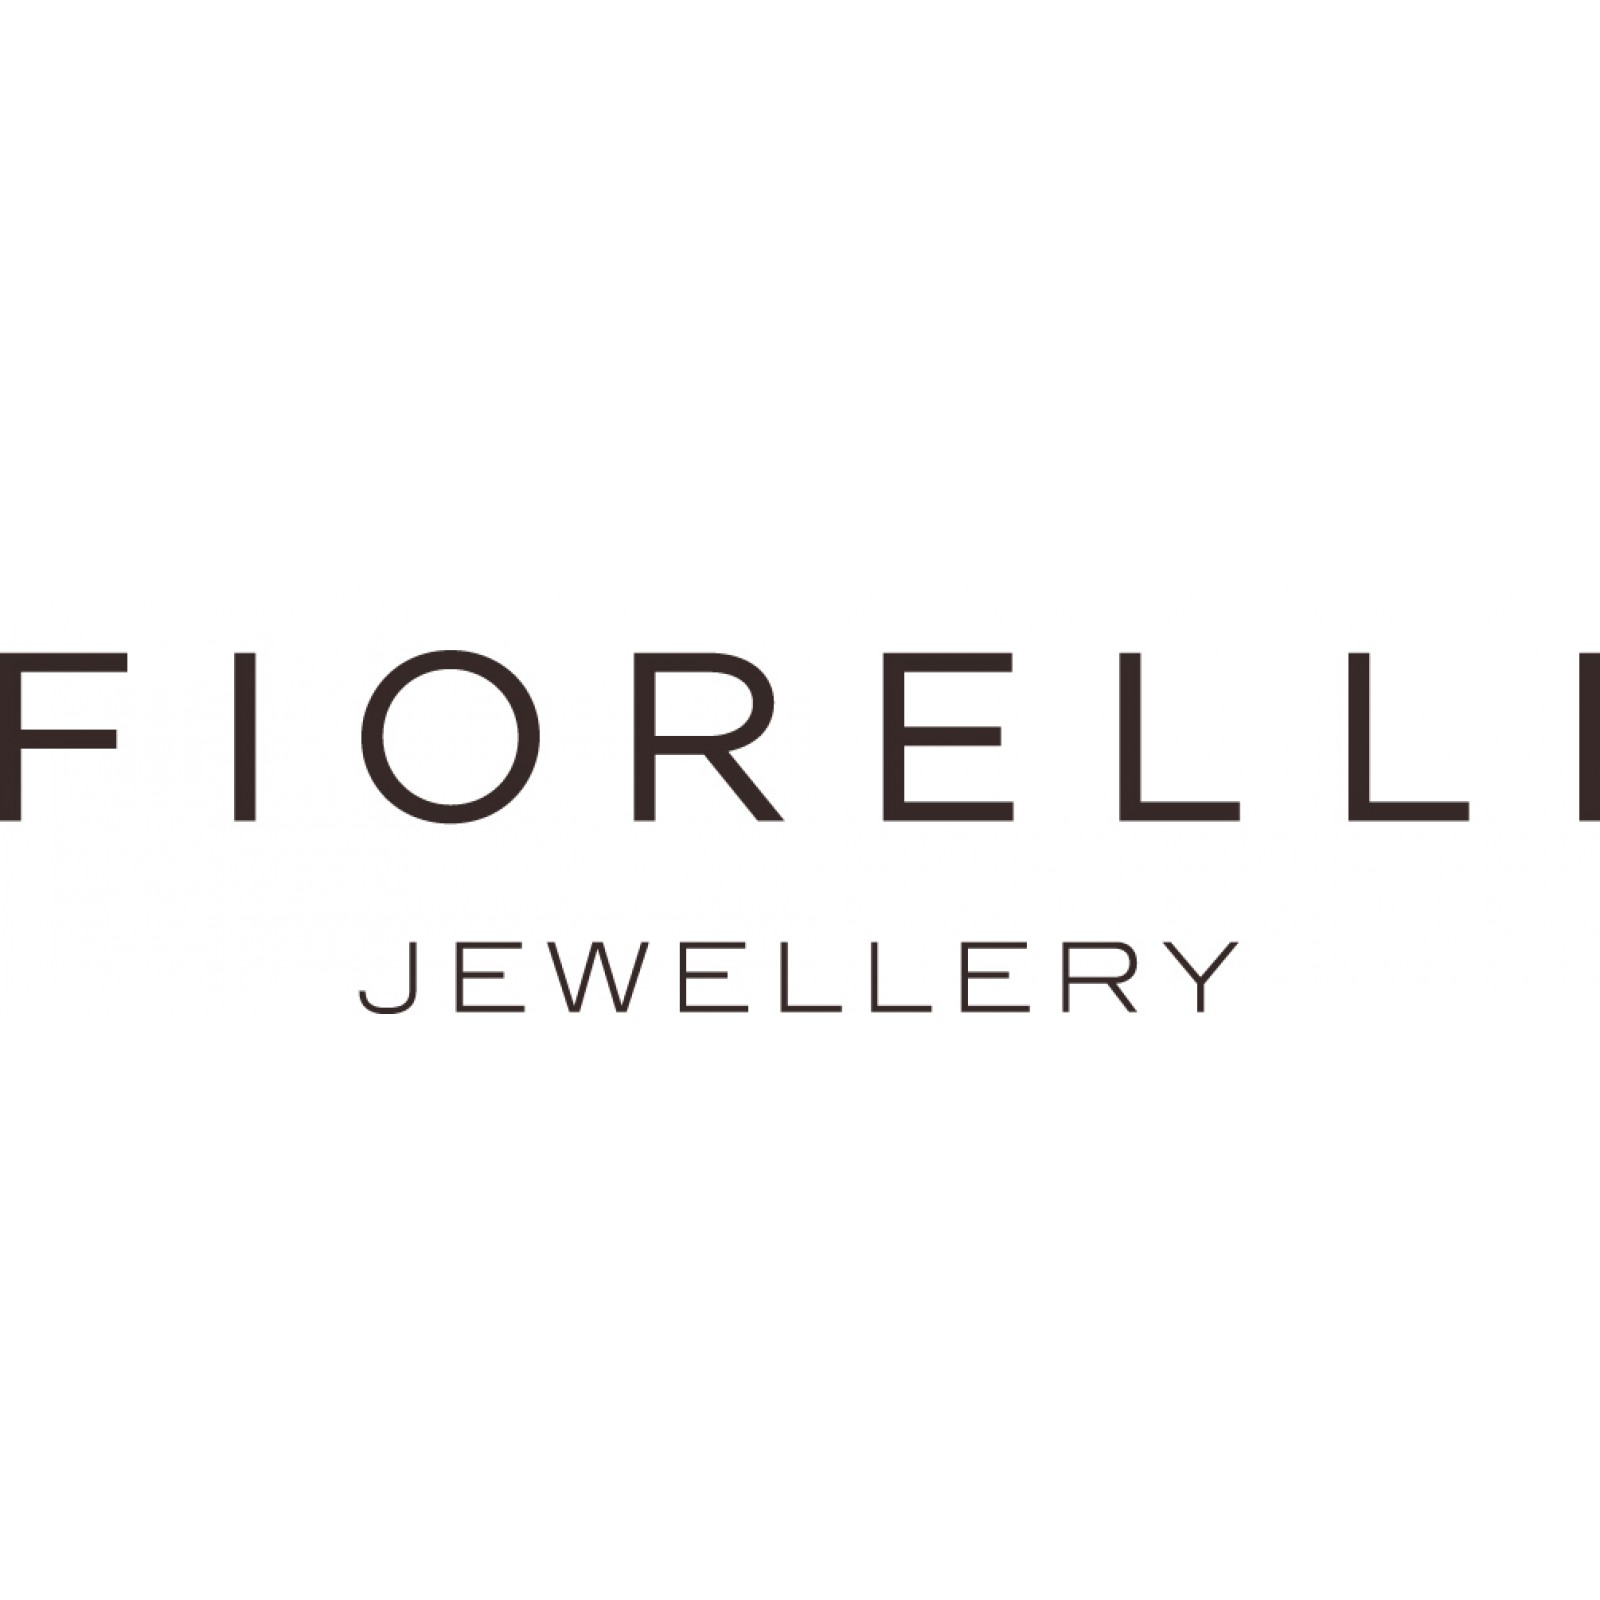 Fiorelli - Fiorelli offers a gorgeous selection of contemporary jewellery designs in a variety of subtle styles and finishes. Fiorelli Silver collection is a range of sterling silver jewellery enhanced with rhodium with an emphasis on design. Affordable and so easy to wear, these chic pieces will finish off your look perfectly.